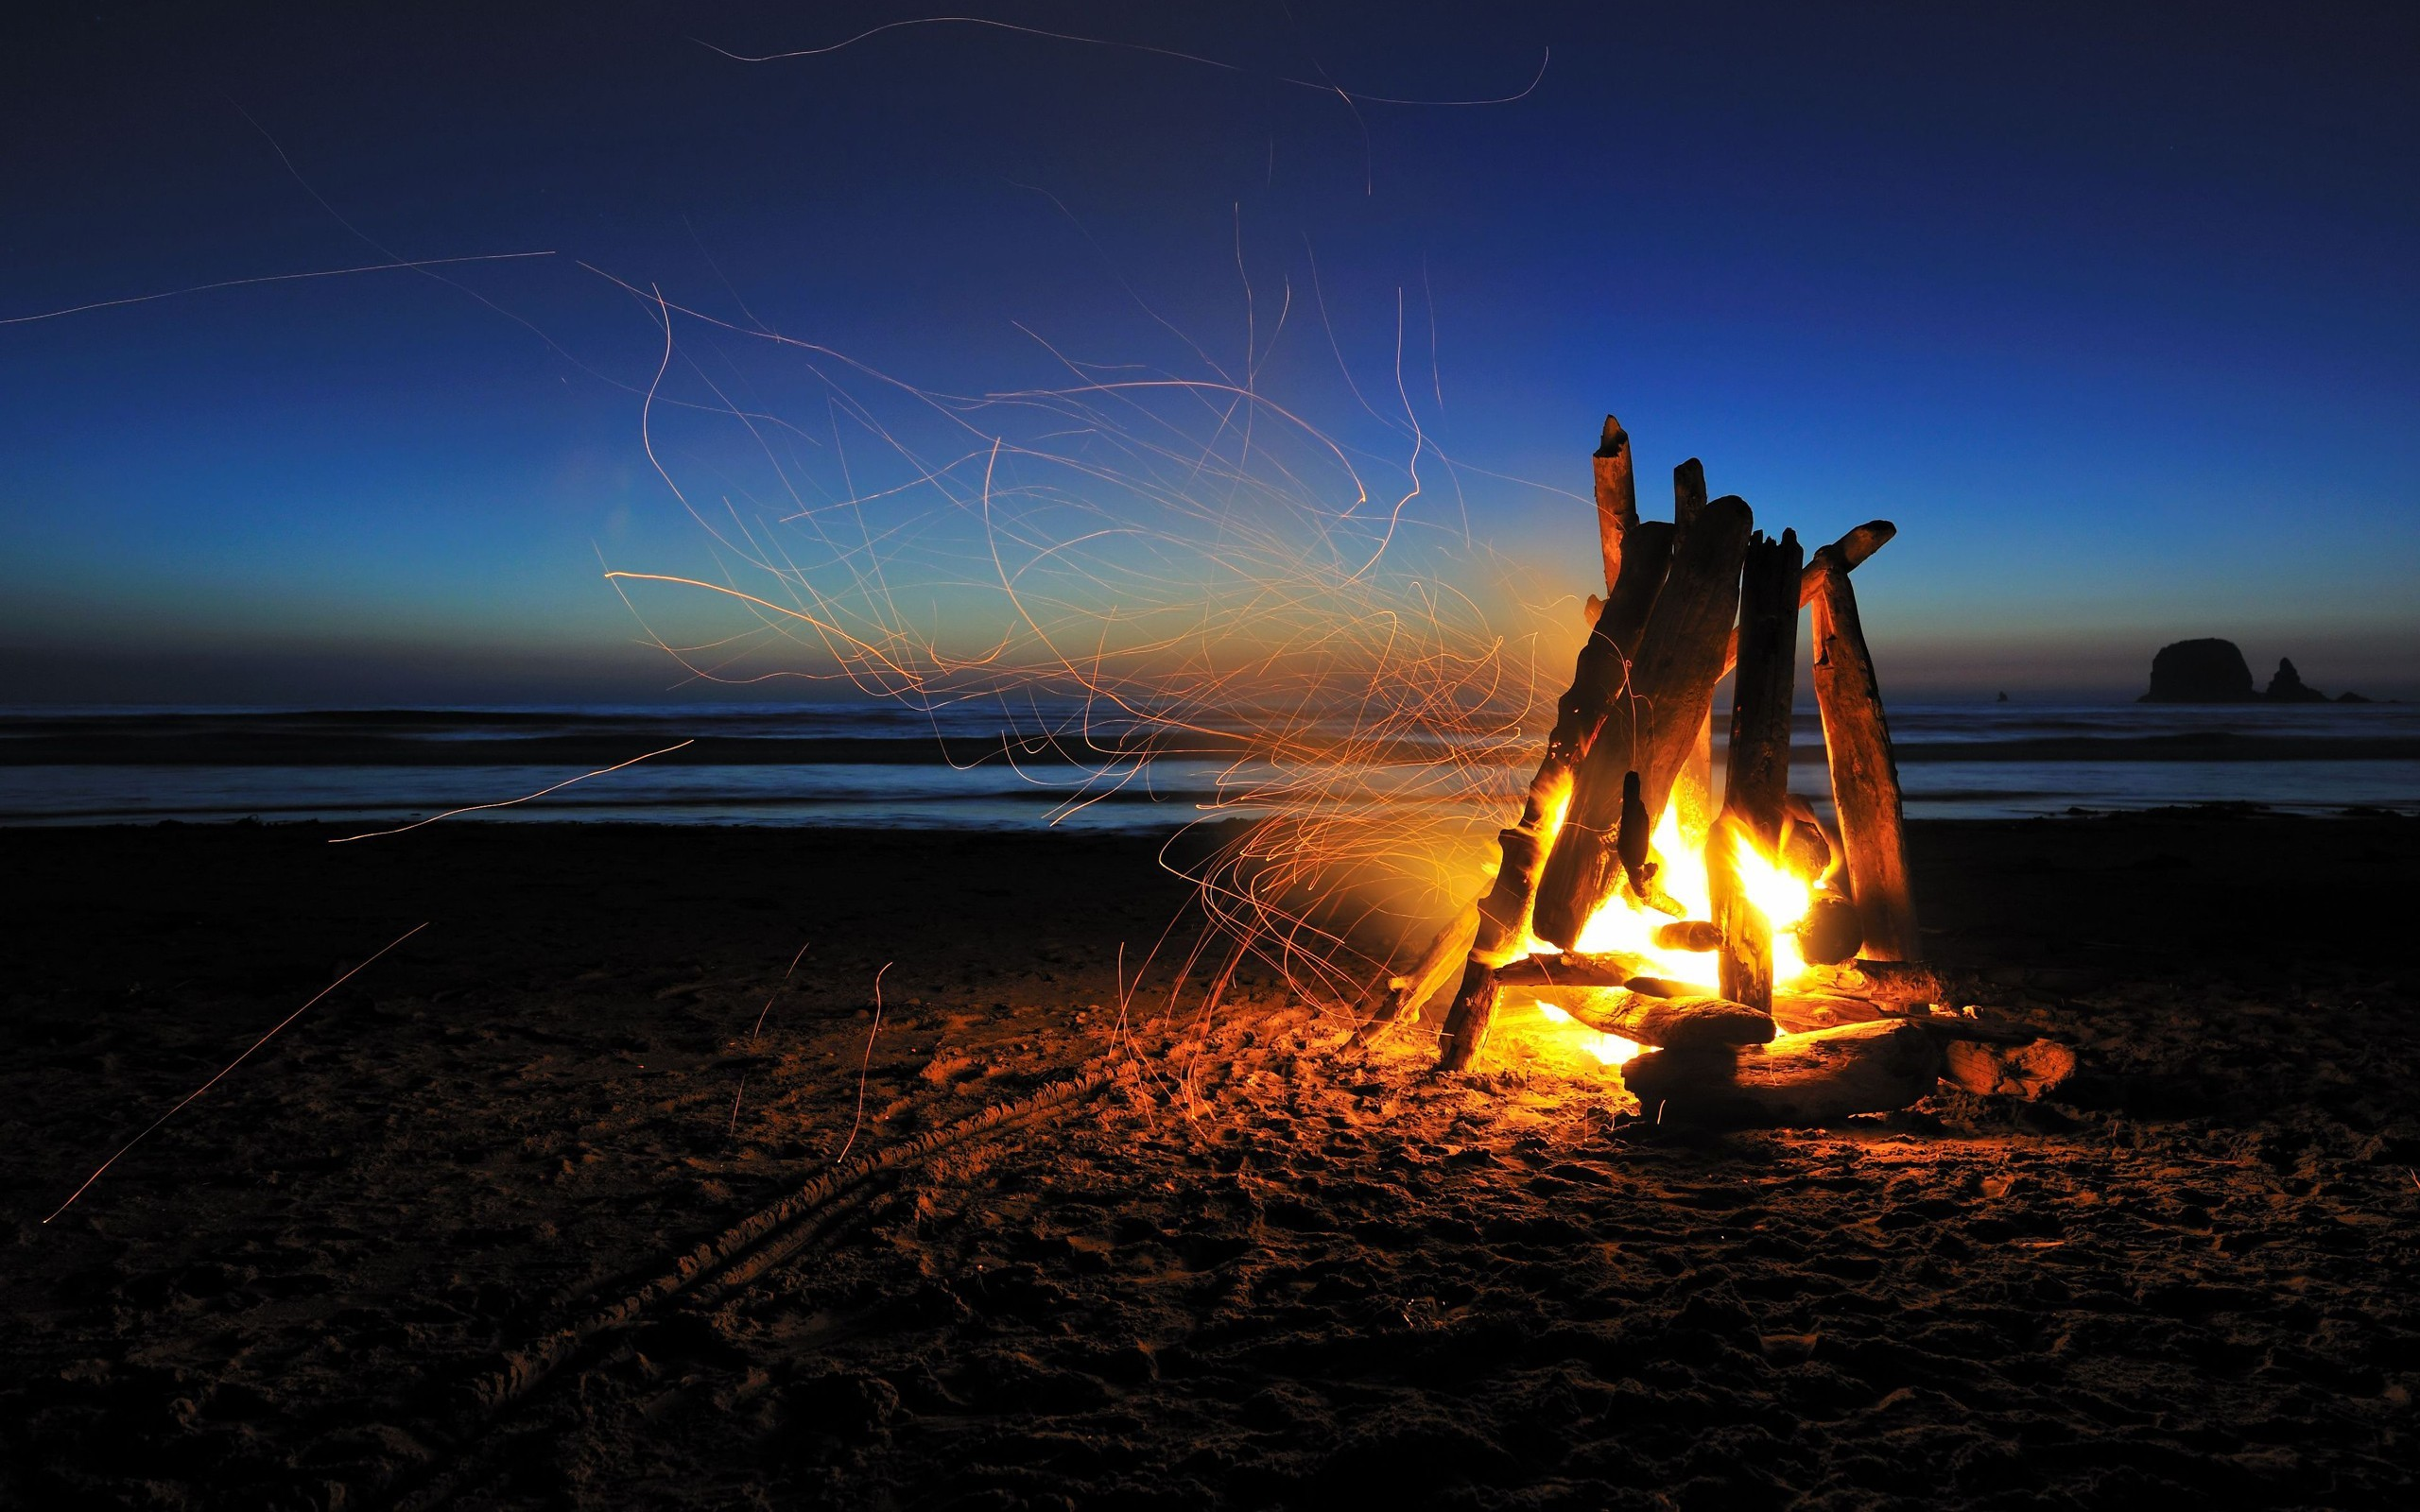 2560x1600 http://www.socwall.com/images/wallpapers/46312-.jpg | Pretty  Pictures | Pinterest | Beach camping, Beach bonfire and Camping